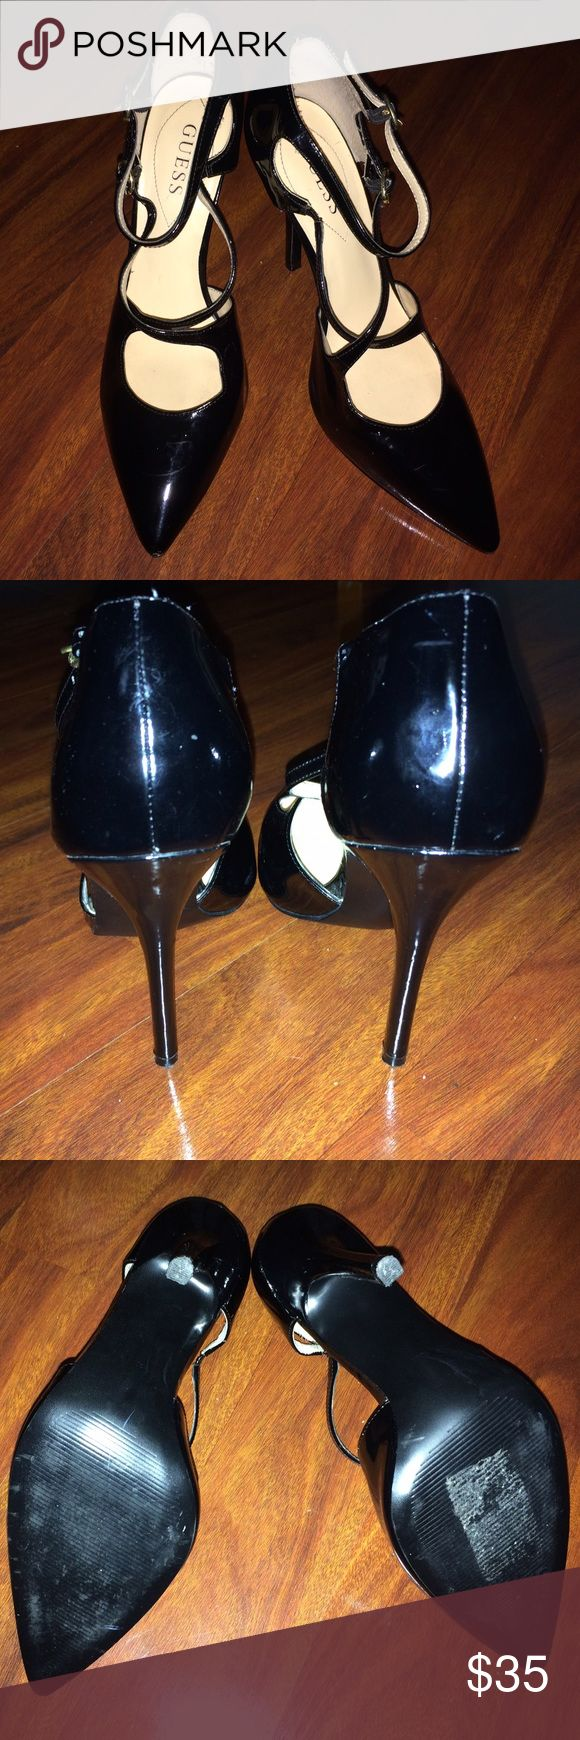 """Guess Patent Leather Pumps 🖤👠 A classic look made sexy! I love these GUESS heels. Worn only ONCE☝🏾! Only noticeable scuff mark I did post a picture. Both straps are functional. 5"""" heel👠! They've been stored in a plastic shoe box since I wore them that one time. 🚫Trades or Low-Ball Offers. If you have any questions feel free to leave me a comment. Happy Poshing 😊💕💕💕 Guess Shoes"""